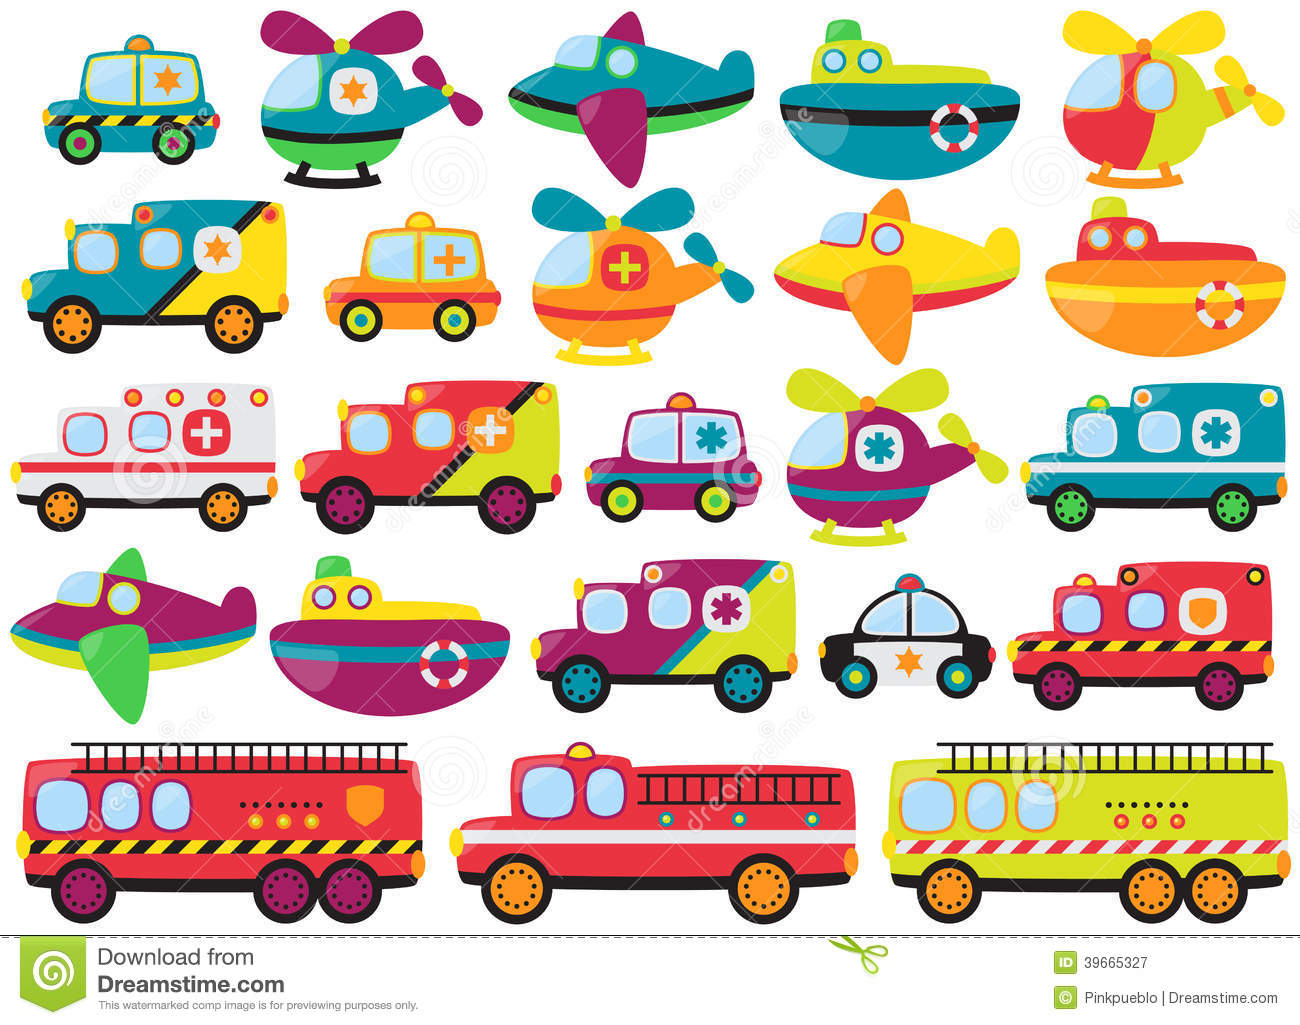 cars helicopter toy with Royalty Free Stock Photography Vector Collection Cute Emergency Rescue Vehicles Retro Style Image39665327 on 371502657788 additionally 291604936645 furthermore Cool Body Design New Rc Helicopter 4ch 2 4g Rc Toys Single Blade Remote Control Helicopter Kids Toy Gifts For Sale furthermore Emek 81135 Volvo Fh Box Trailer Truck White moreover Toy Helicopter Wire Control Toy Toy Remote Control Toys Electric Toy Children Toys Boys Girl Toy.